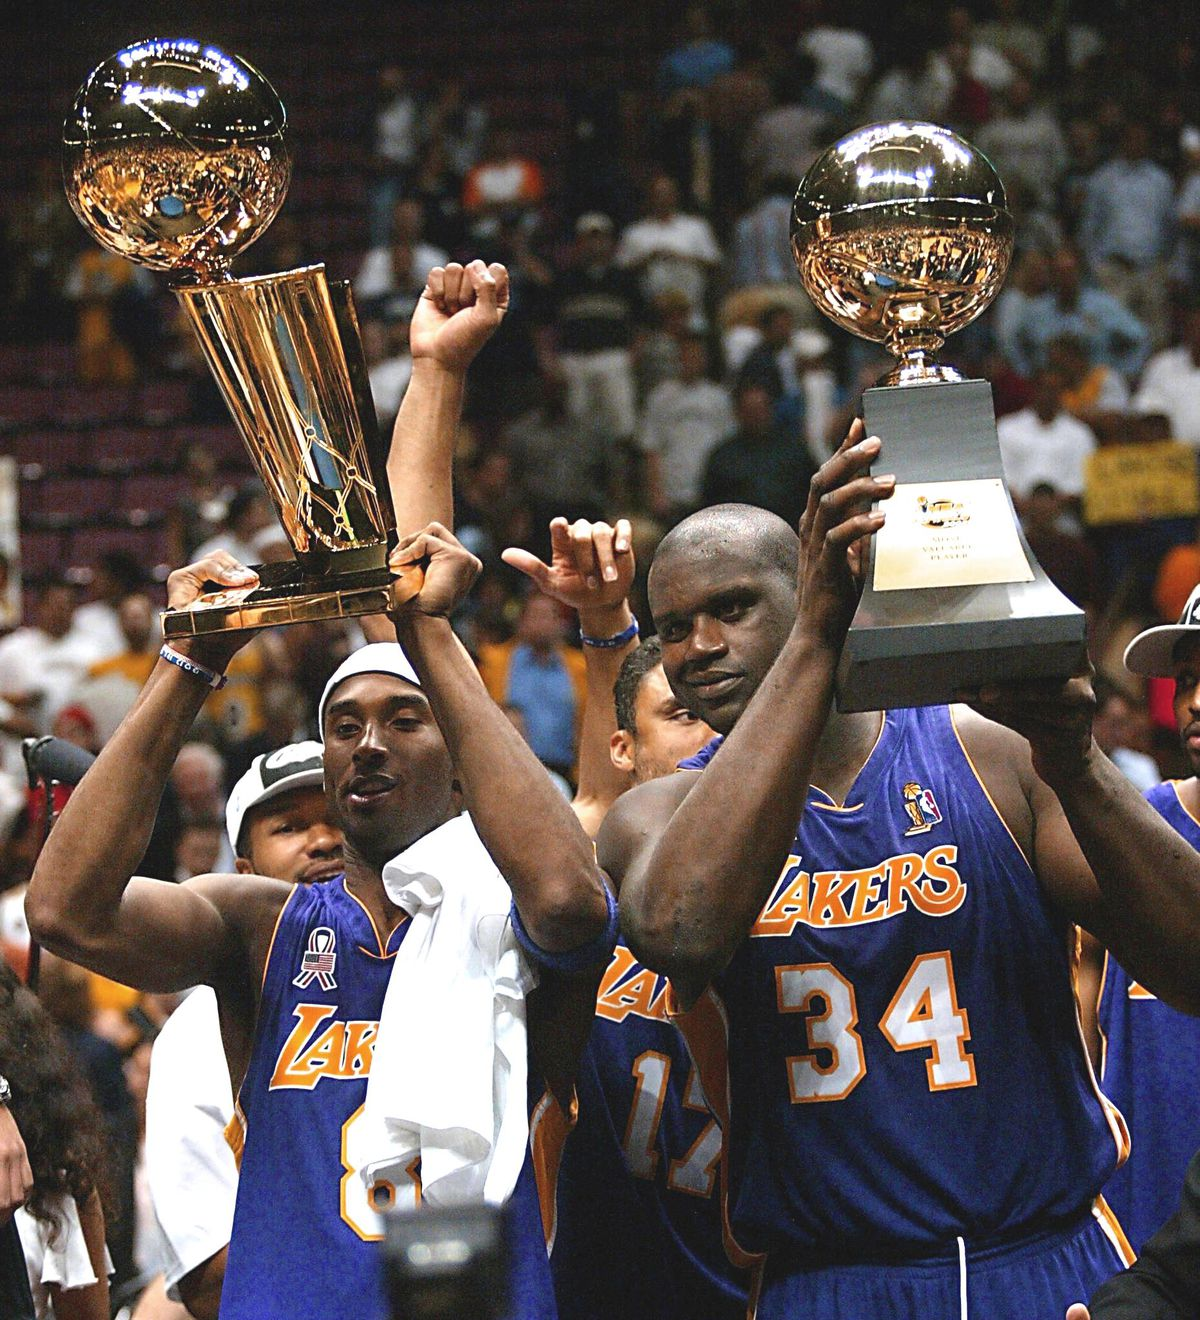 Los Angeles Lakers Kobe Bryant (L) and Shaquille O